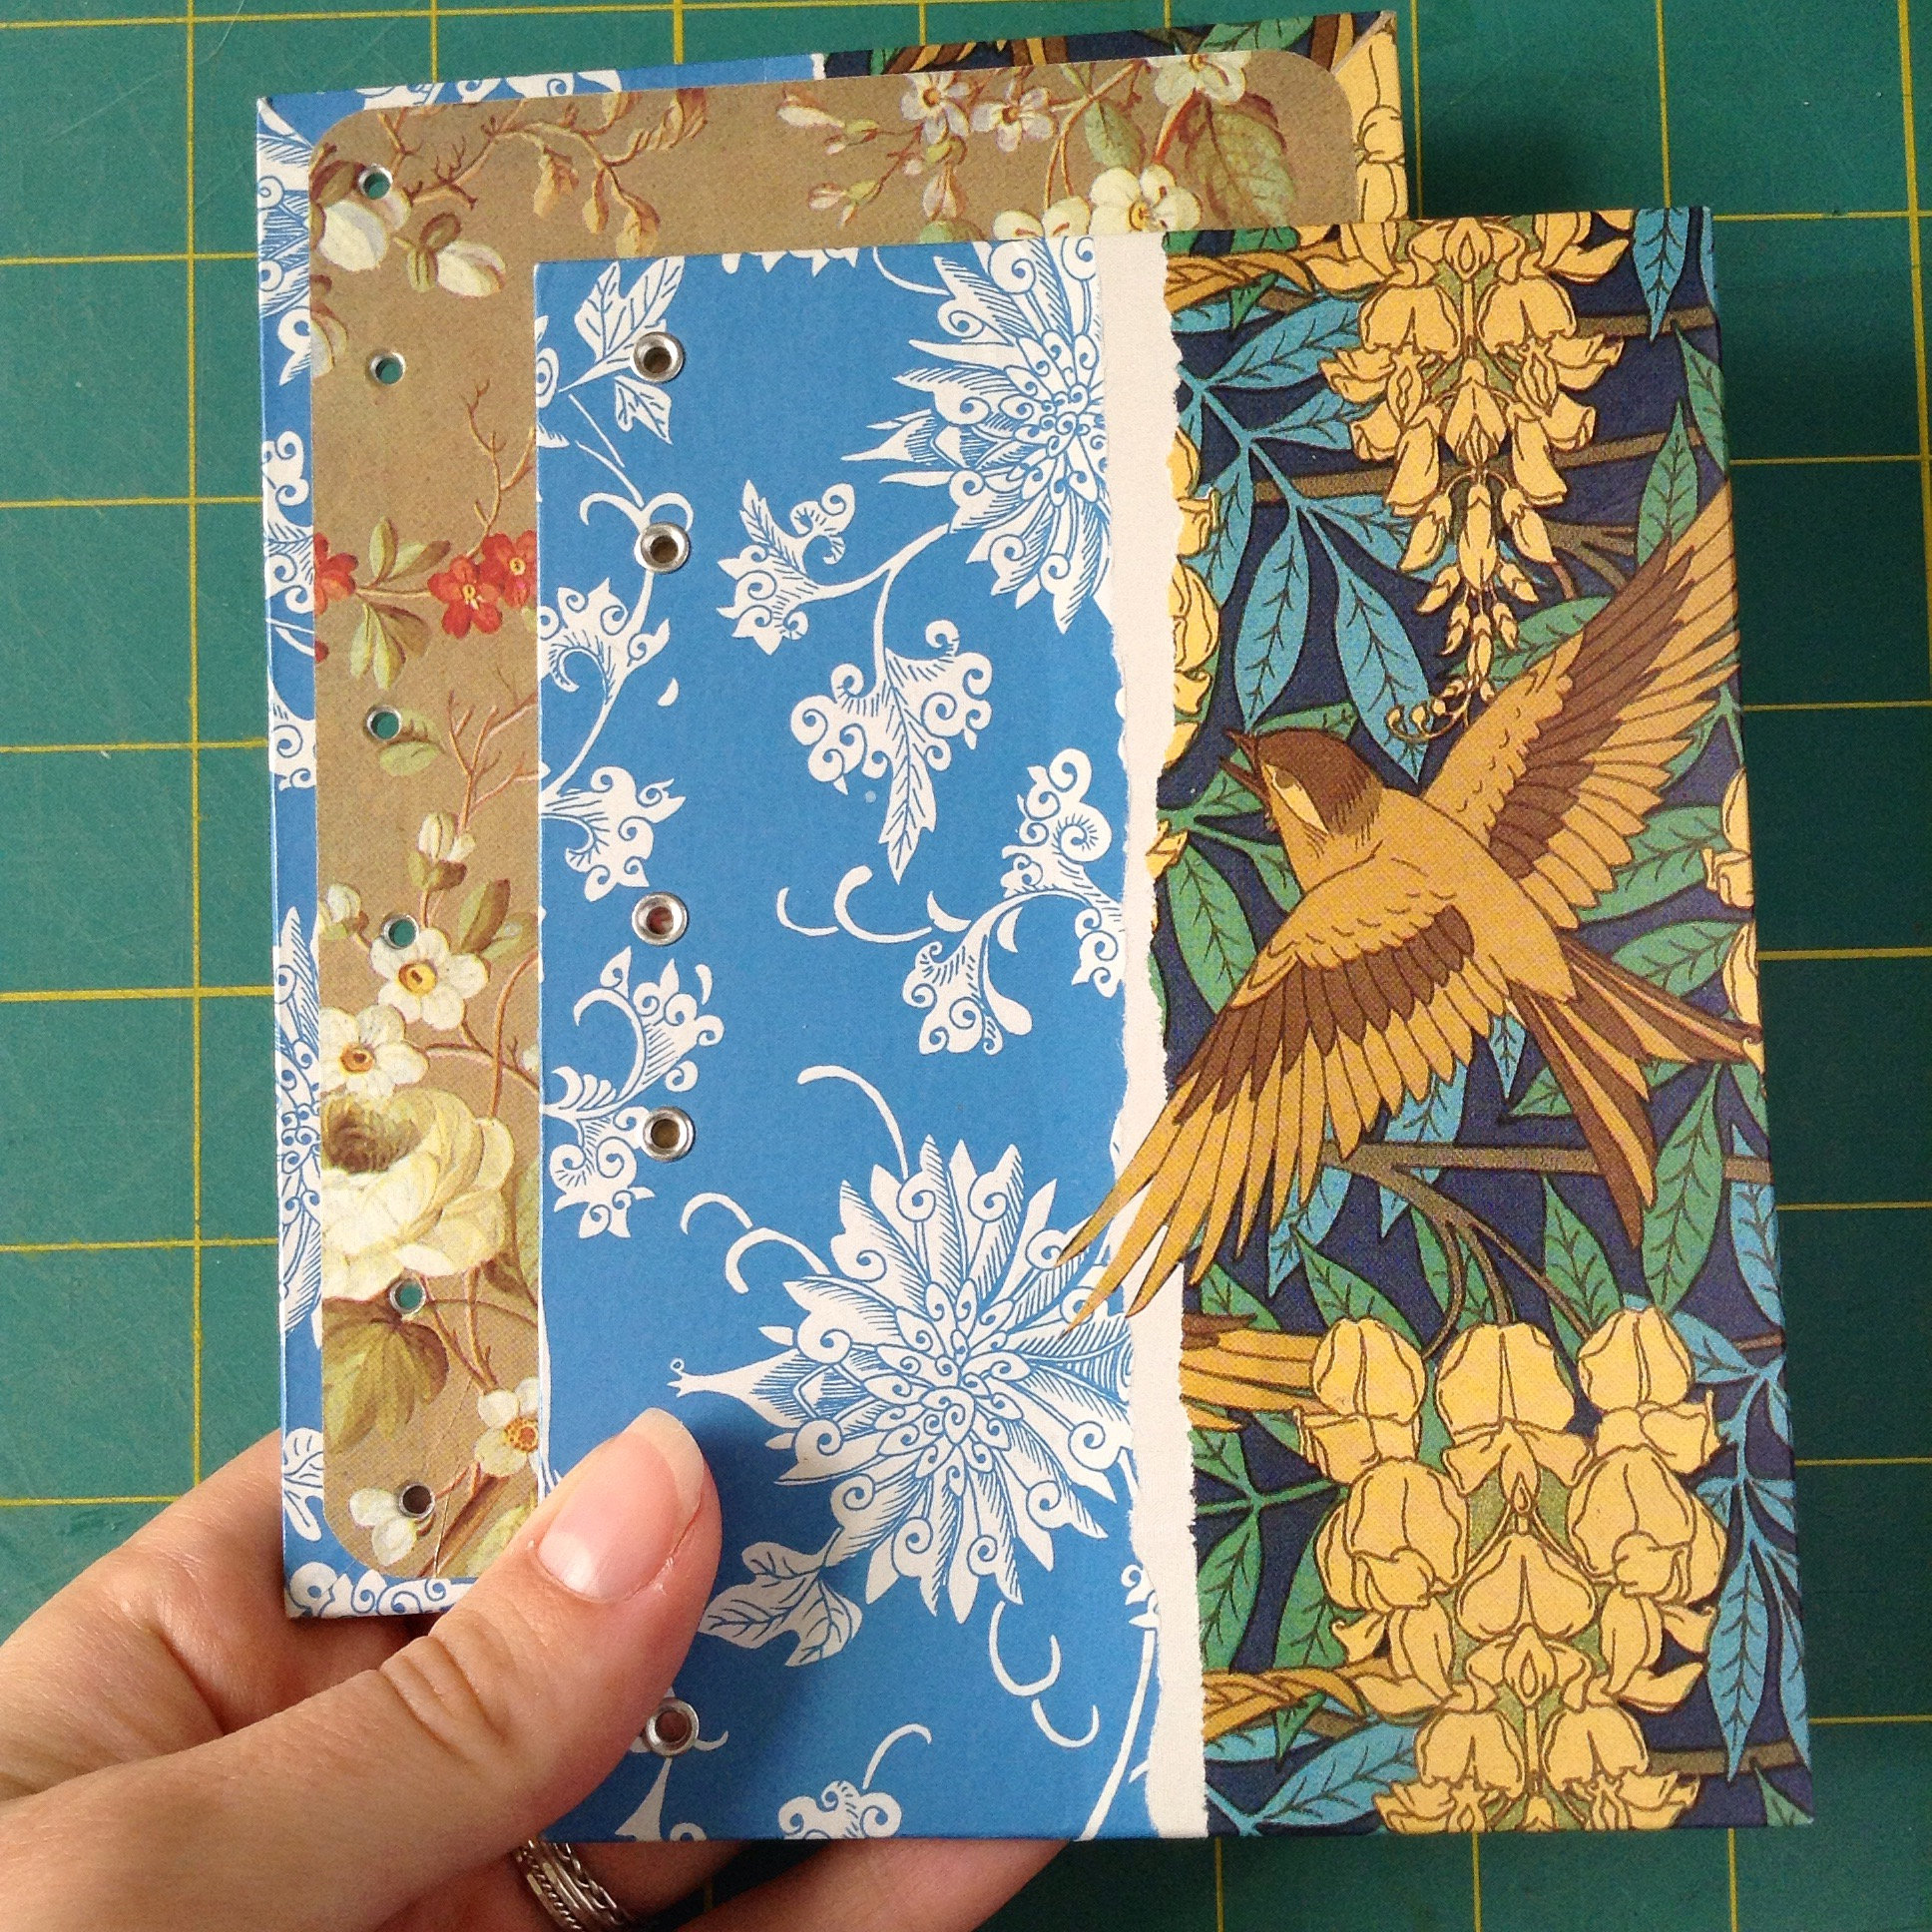 Bookbinding project pictures from Ruth Bleakley - finished covers on Sparrow Art Nouveau book